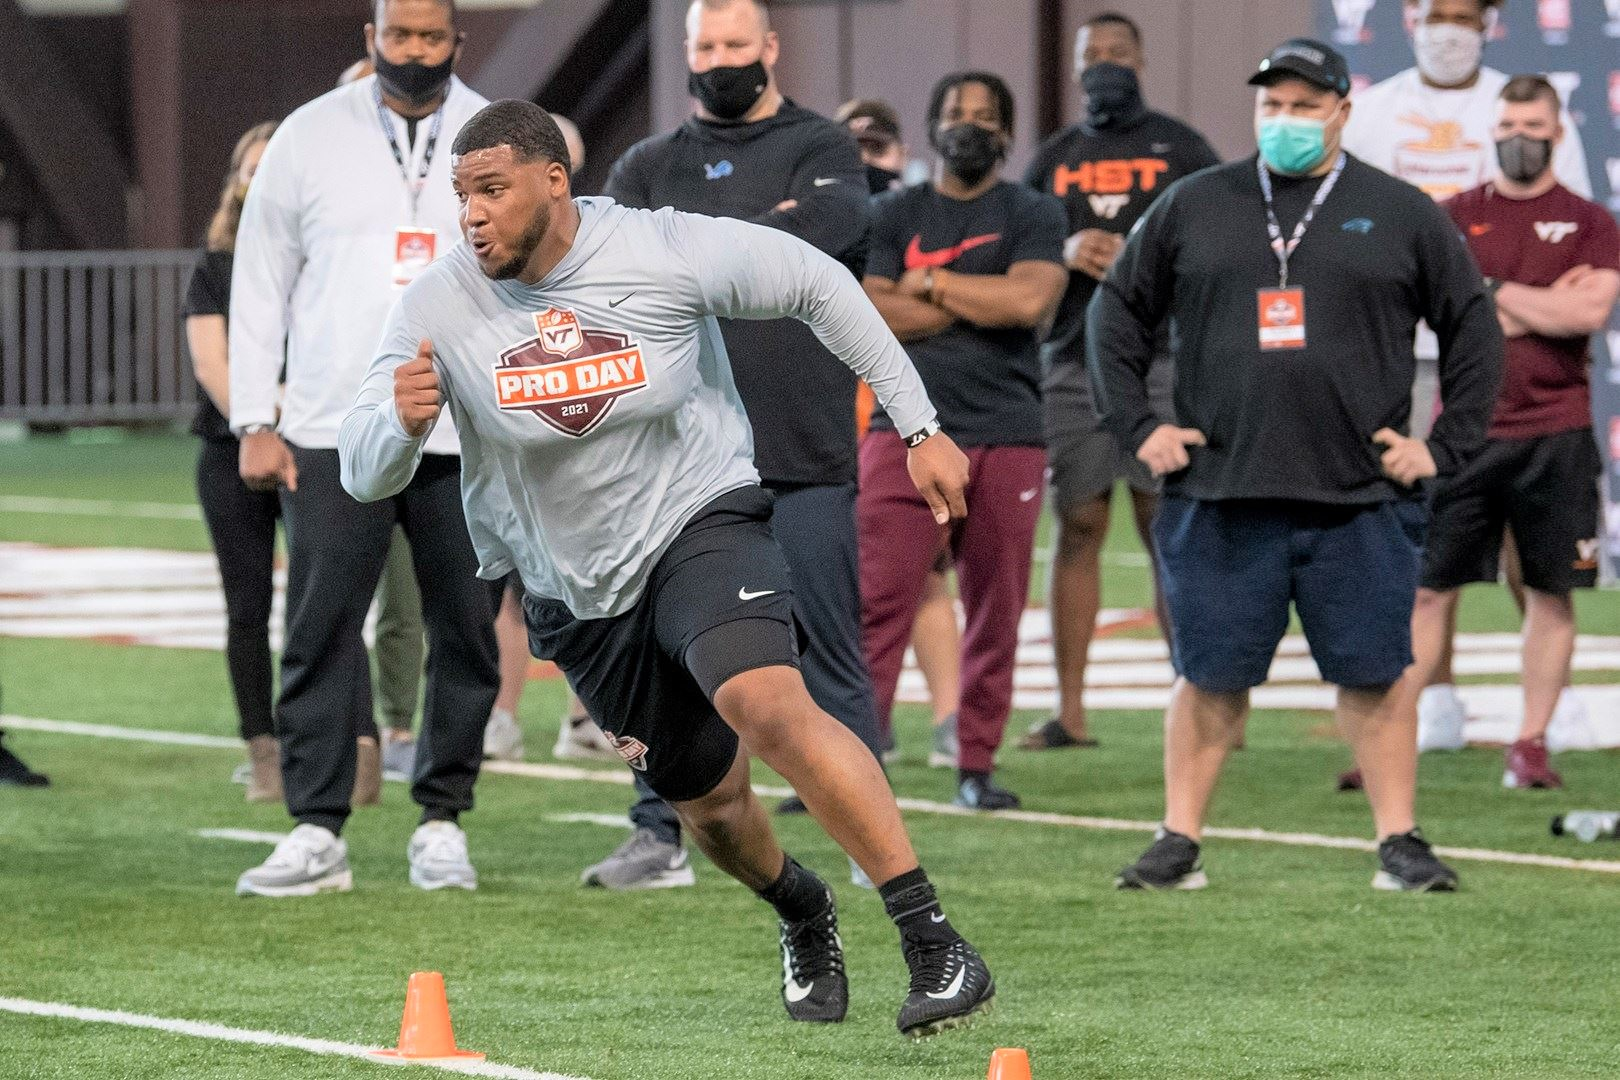 Hokies impress NFL scouts on Pro Day